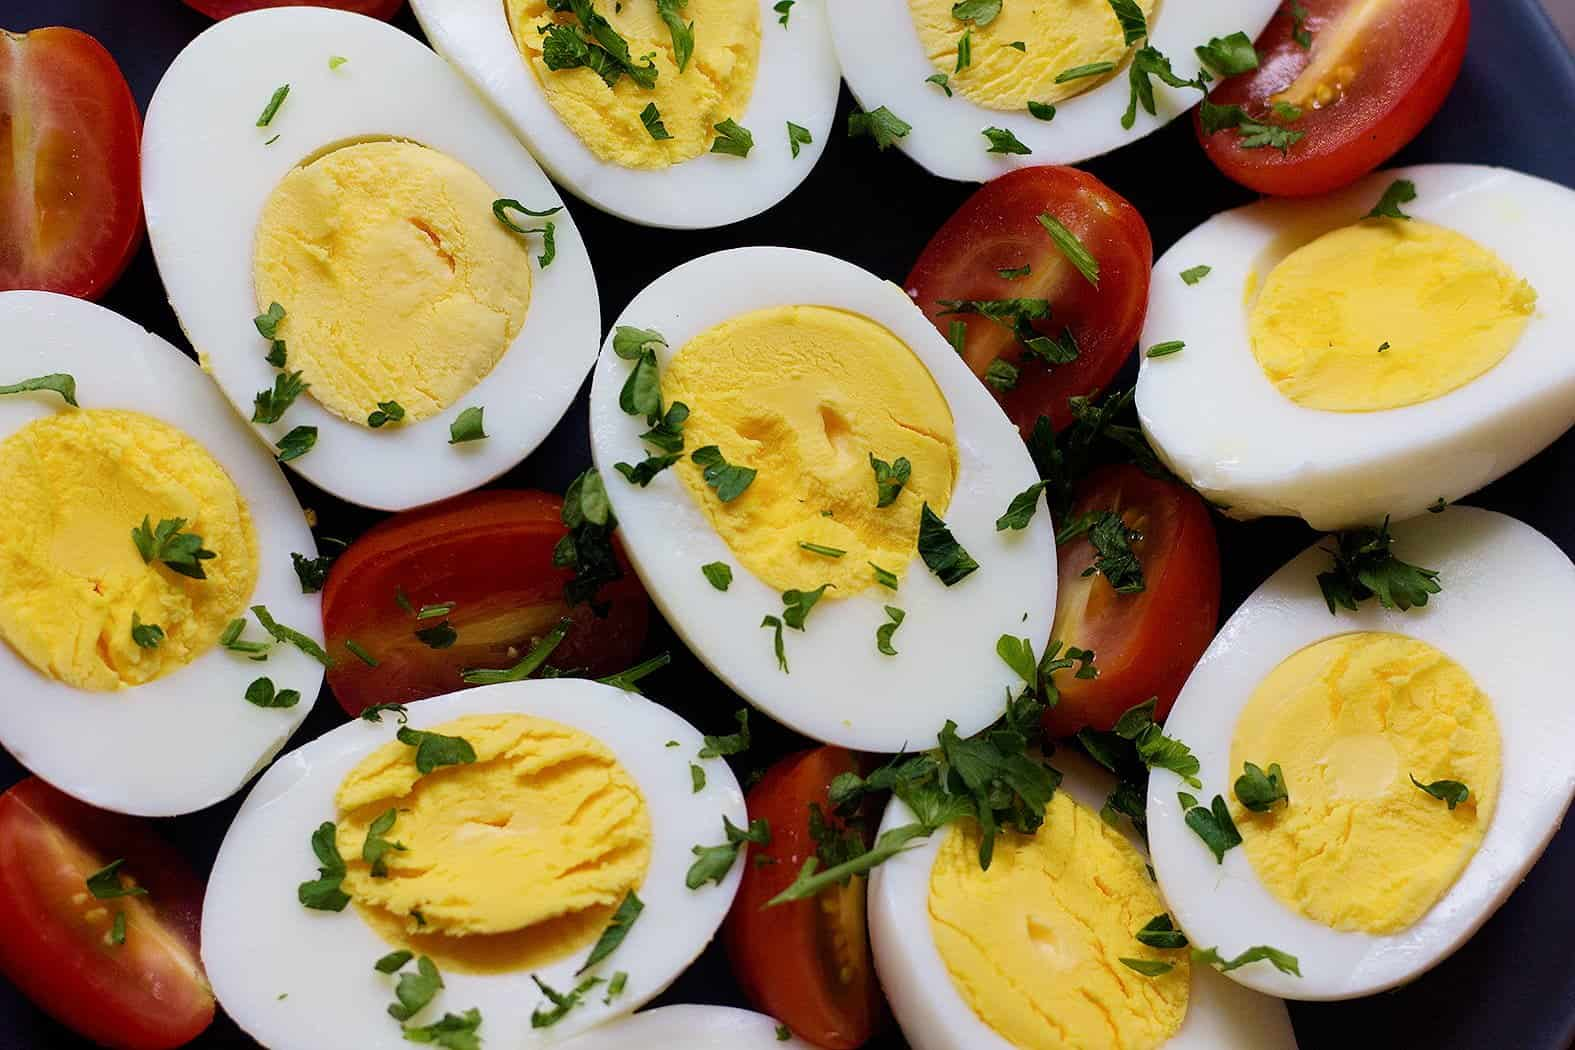 stant pot boiled eggs turn our perfectly every time. Whether you want soft boiled or hard boiled eggs, they're going to be cooked exactly how you like them to be.